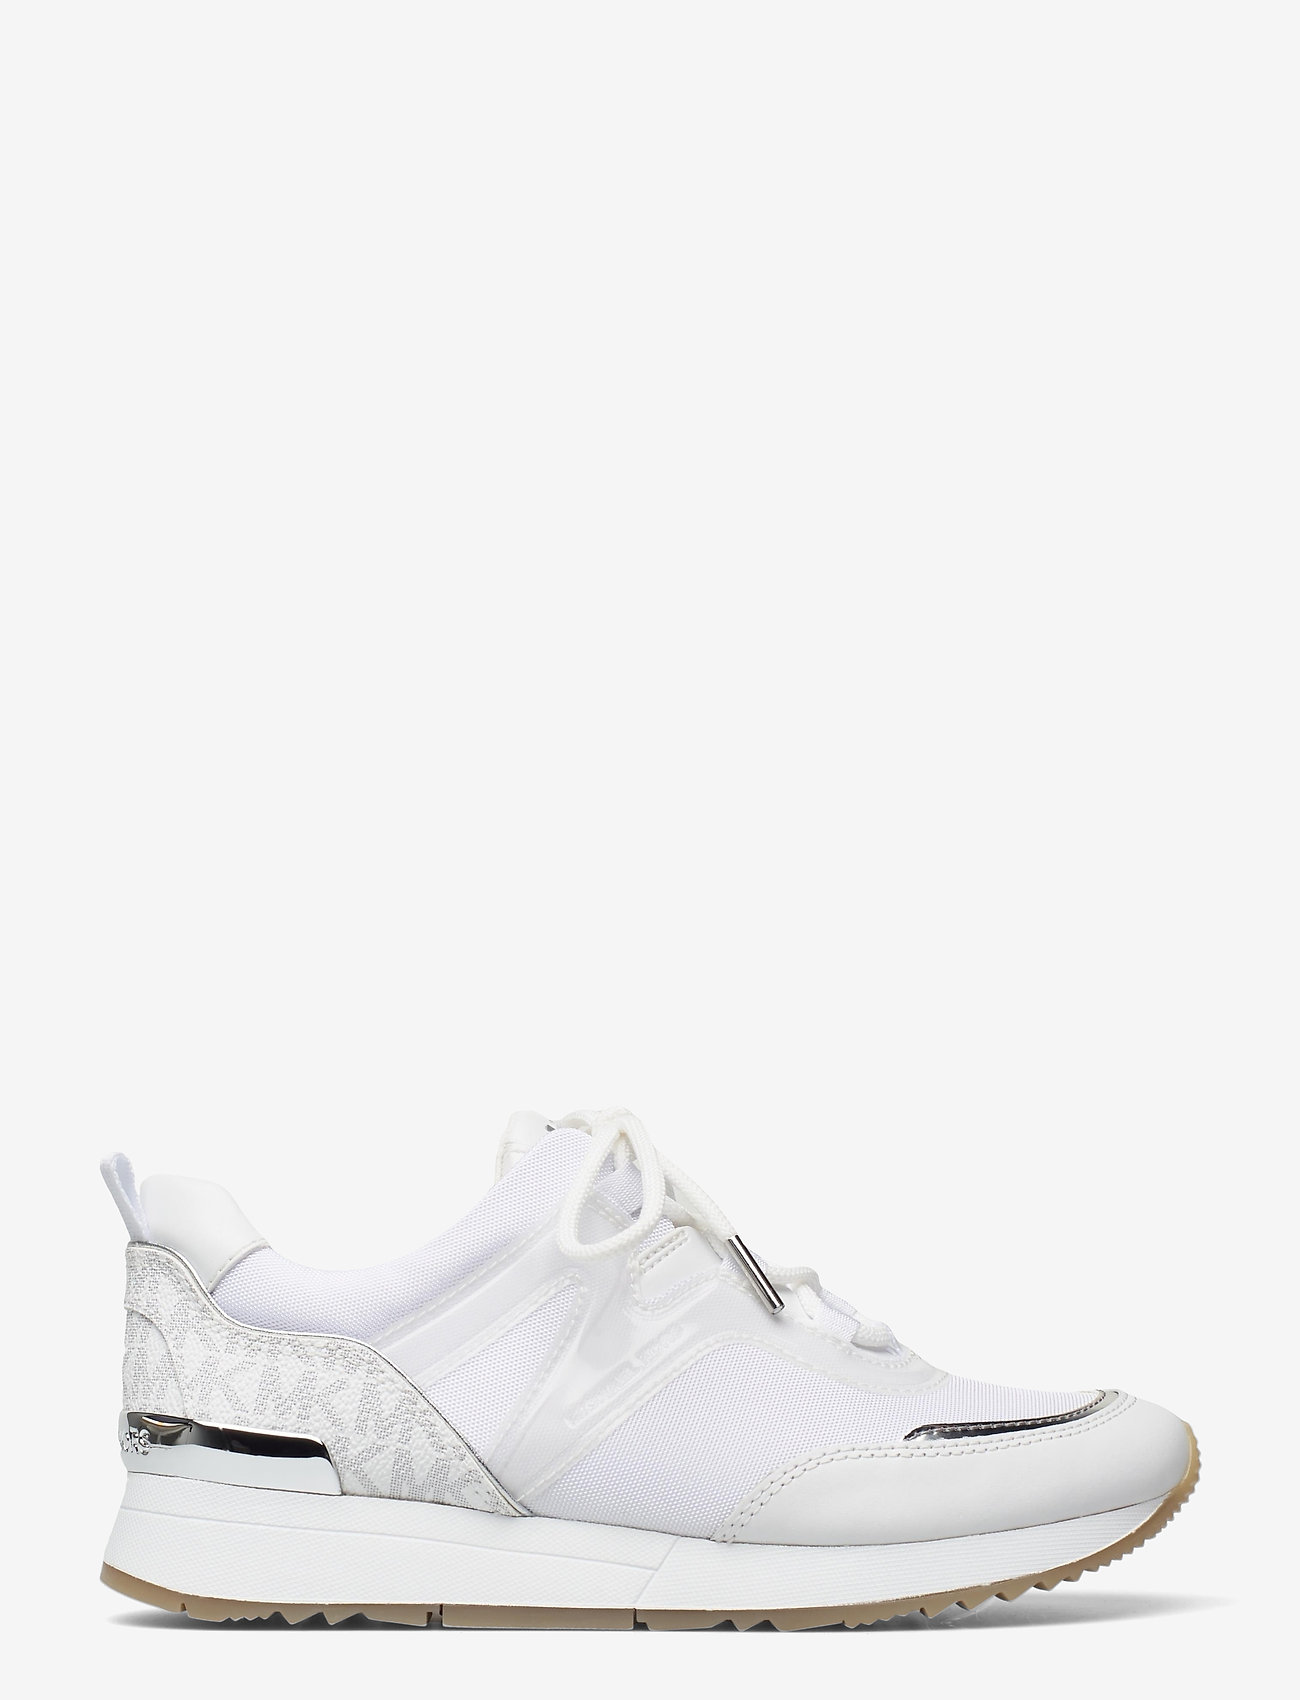 Michael Kors - PIPPIN TRAINER - lage sneakers - bright wht - 1